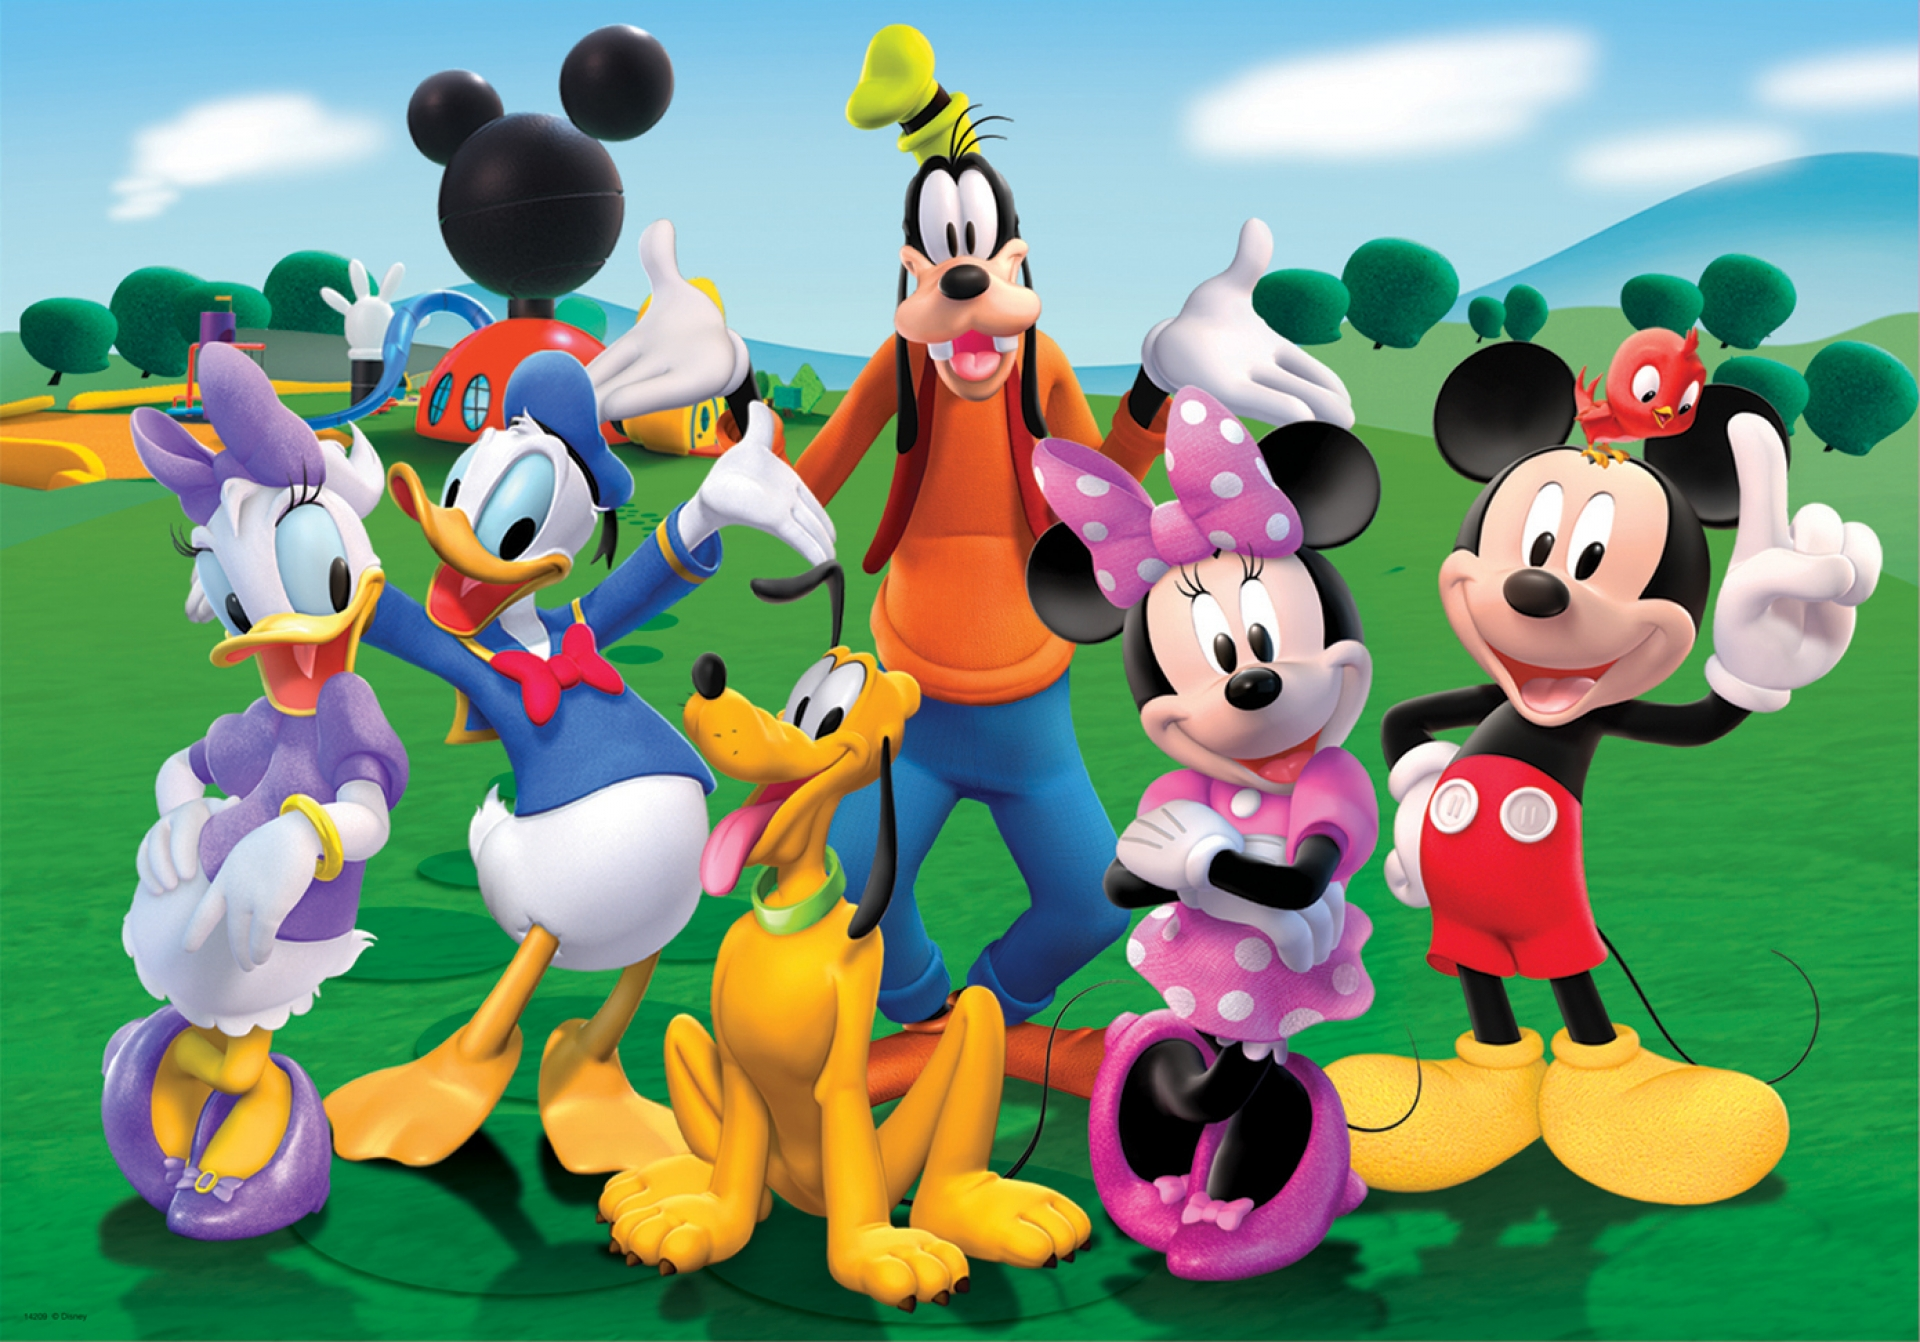 Mickey Mouse And Friends Backgrounds on Wallpapers Vista